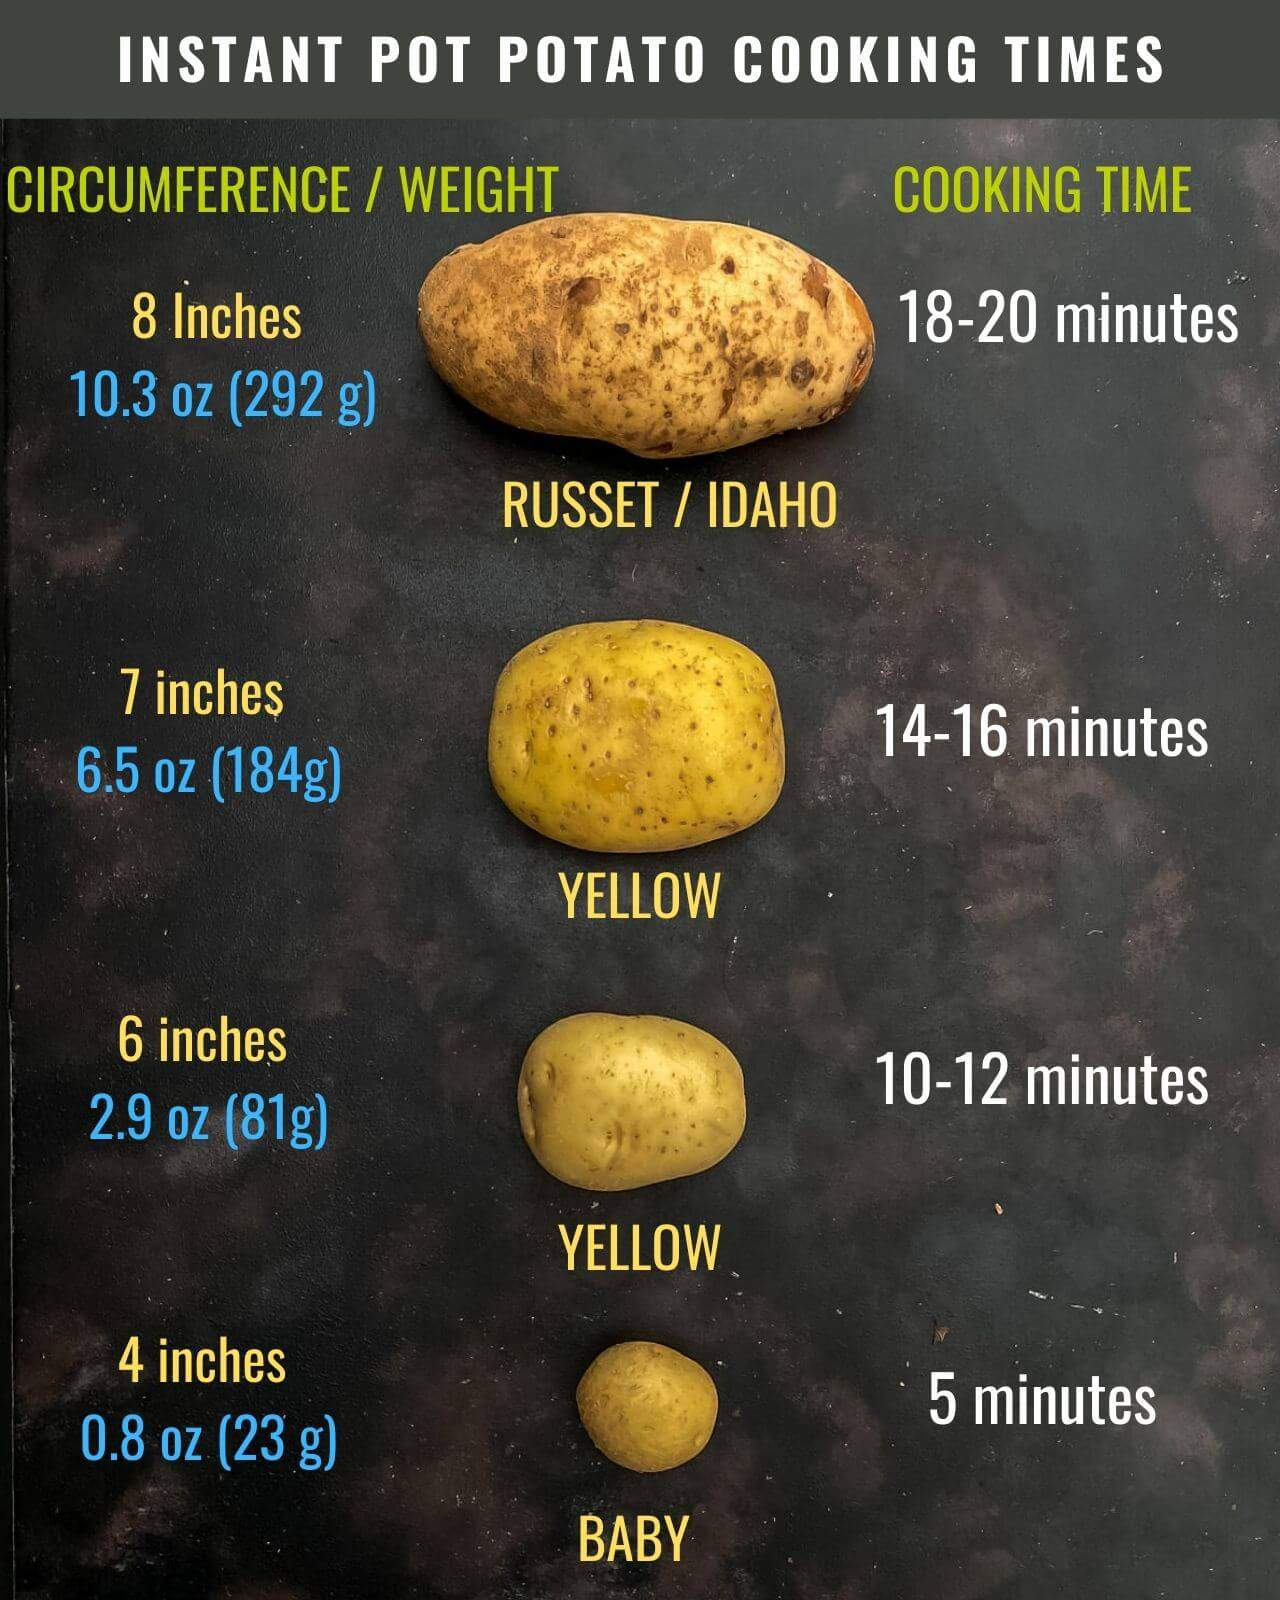 A visual guide telling you how long to cook each sized potato from largest at the top to smallest at the bottom and the words Instant Pot Potato Cooking Times at the top.